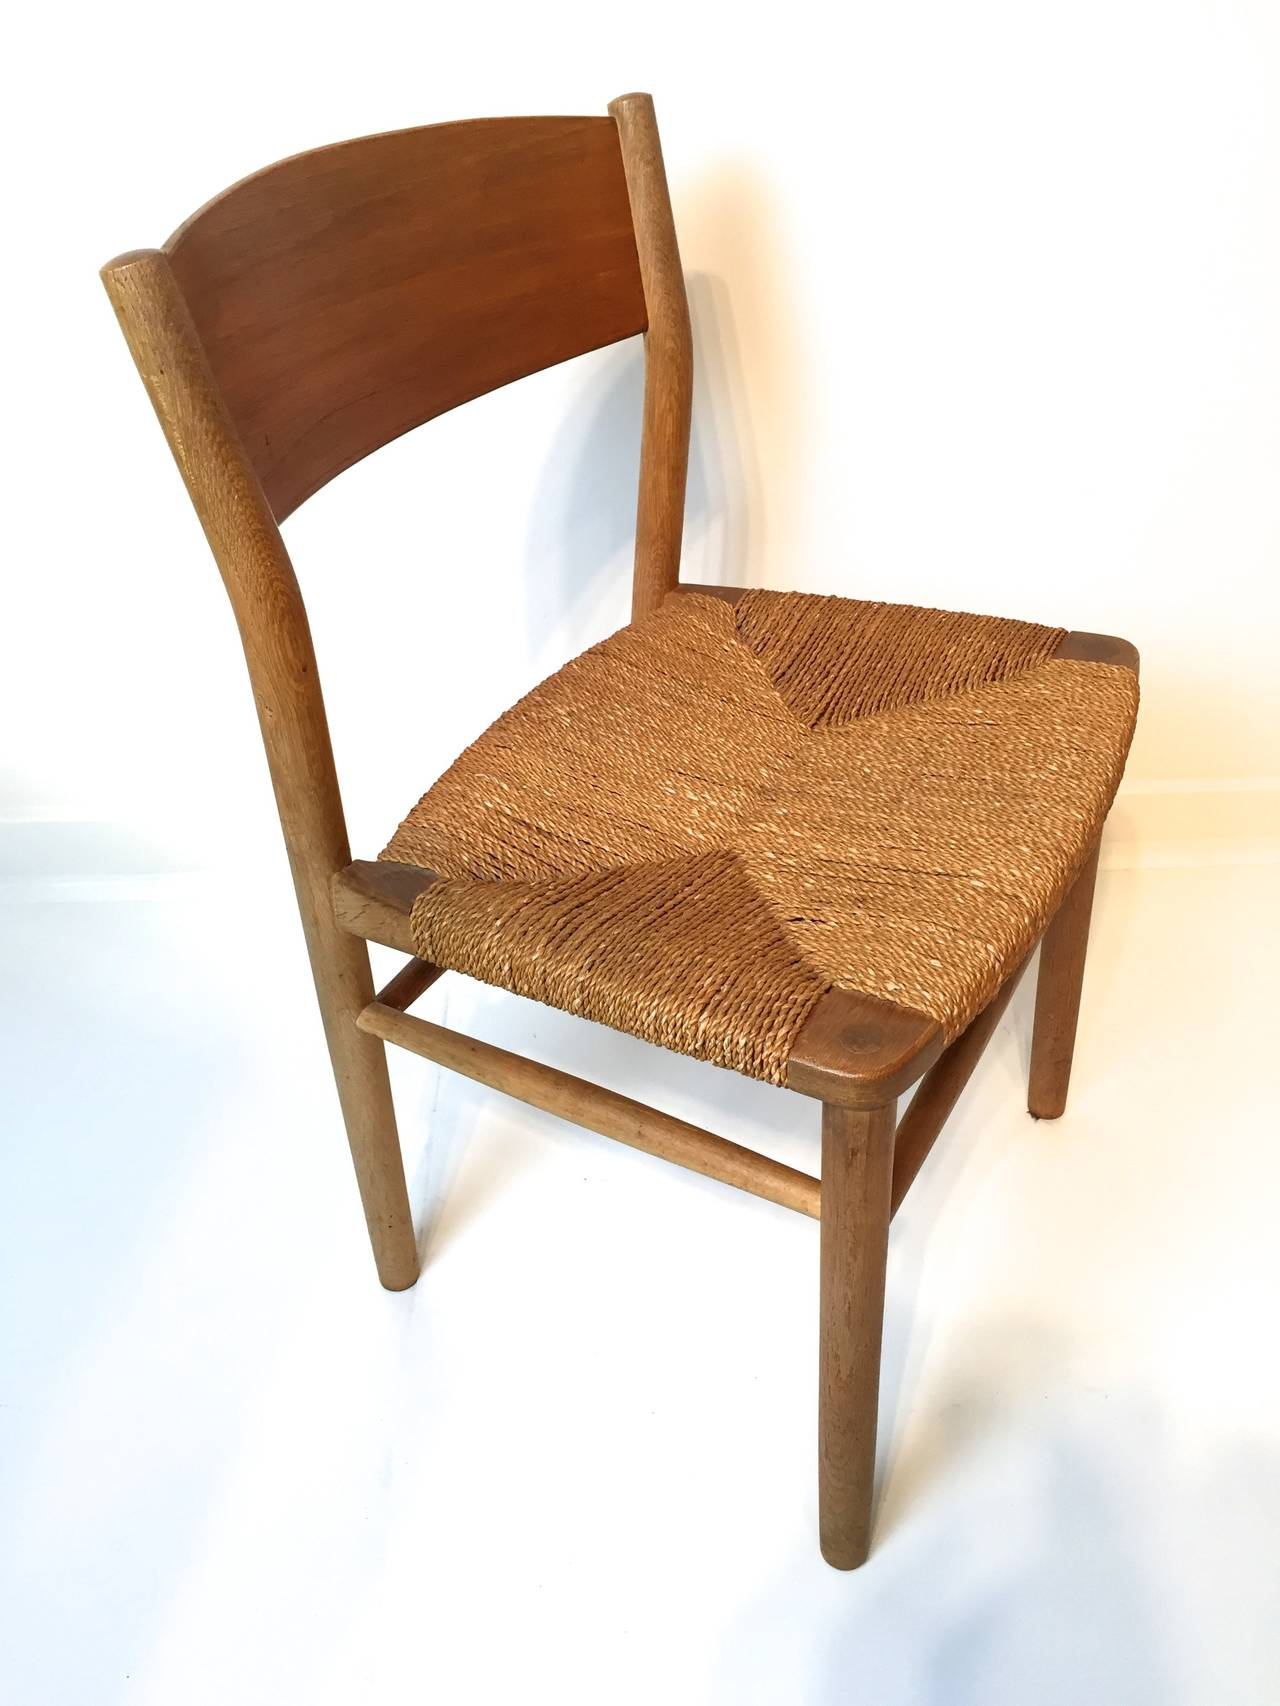 seagrass dining chairs the sharper image massage chair borge mogensen at 1stdibs